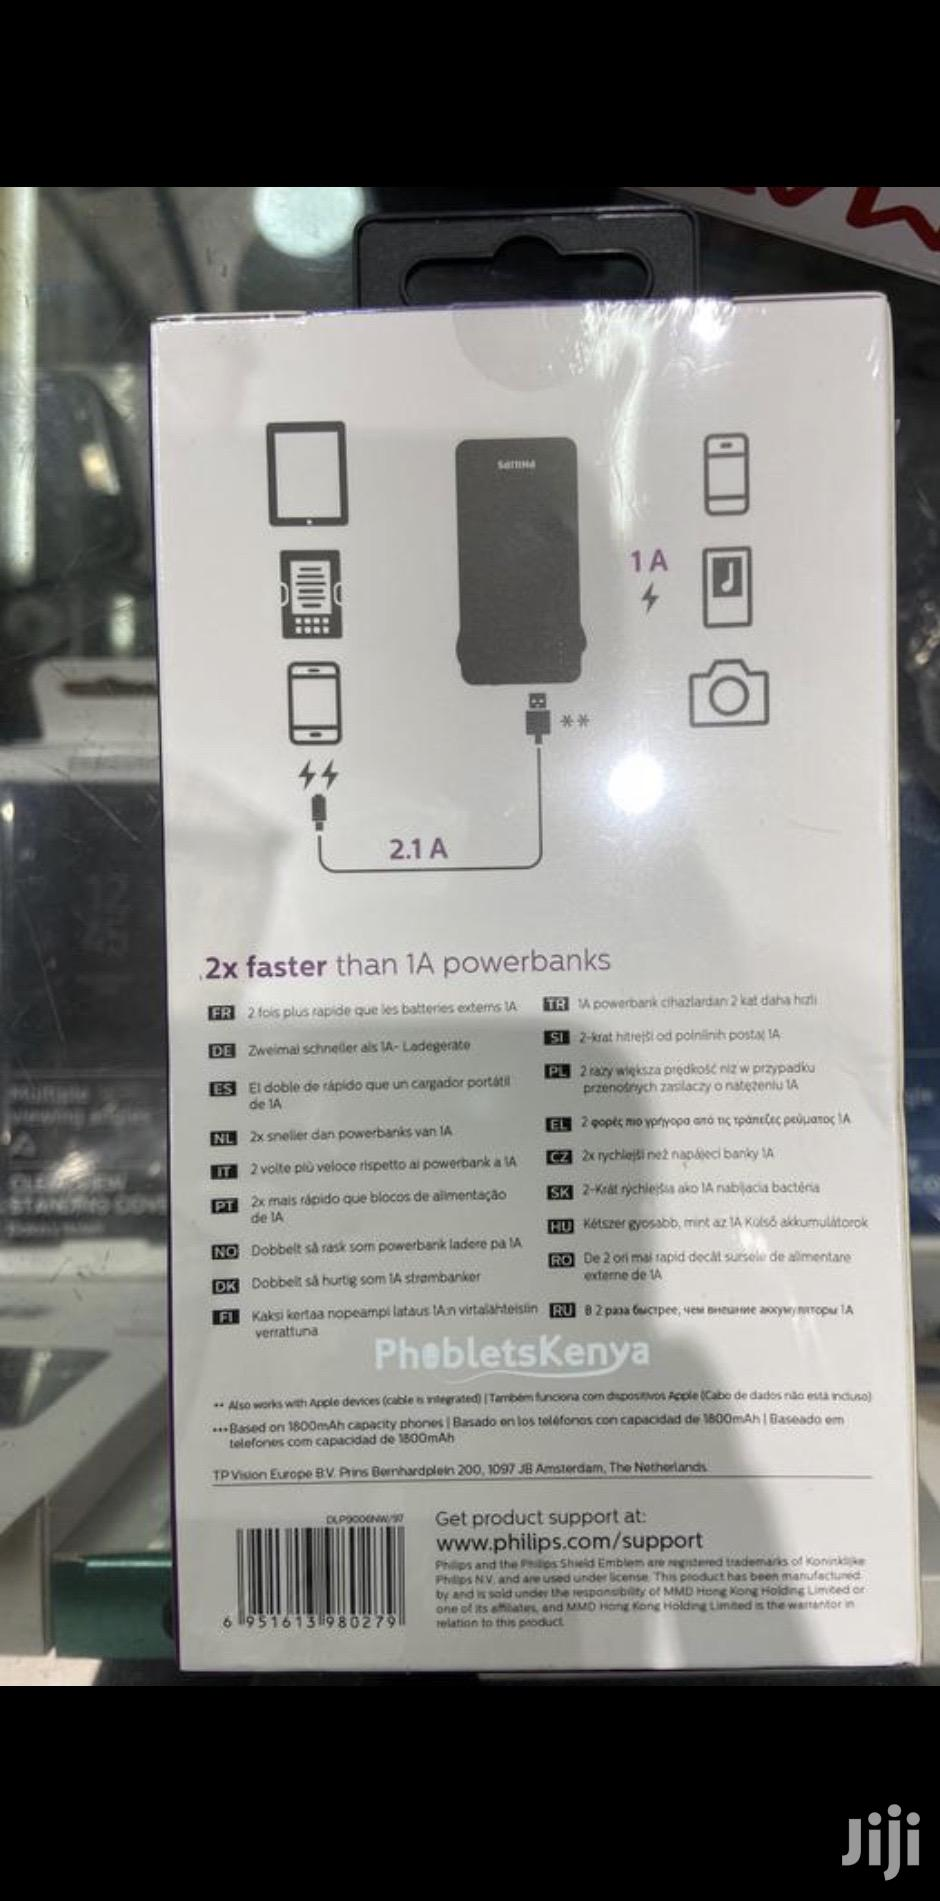 Philips Portable 10000mah Capacity   Accessories for Mobile Phones & Tablets for sale in Nairobi Central, Nairobi, Kenya